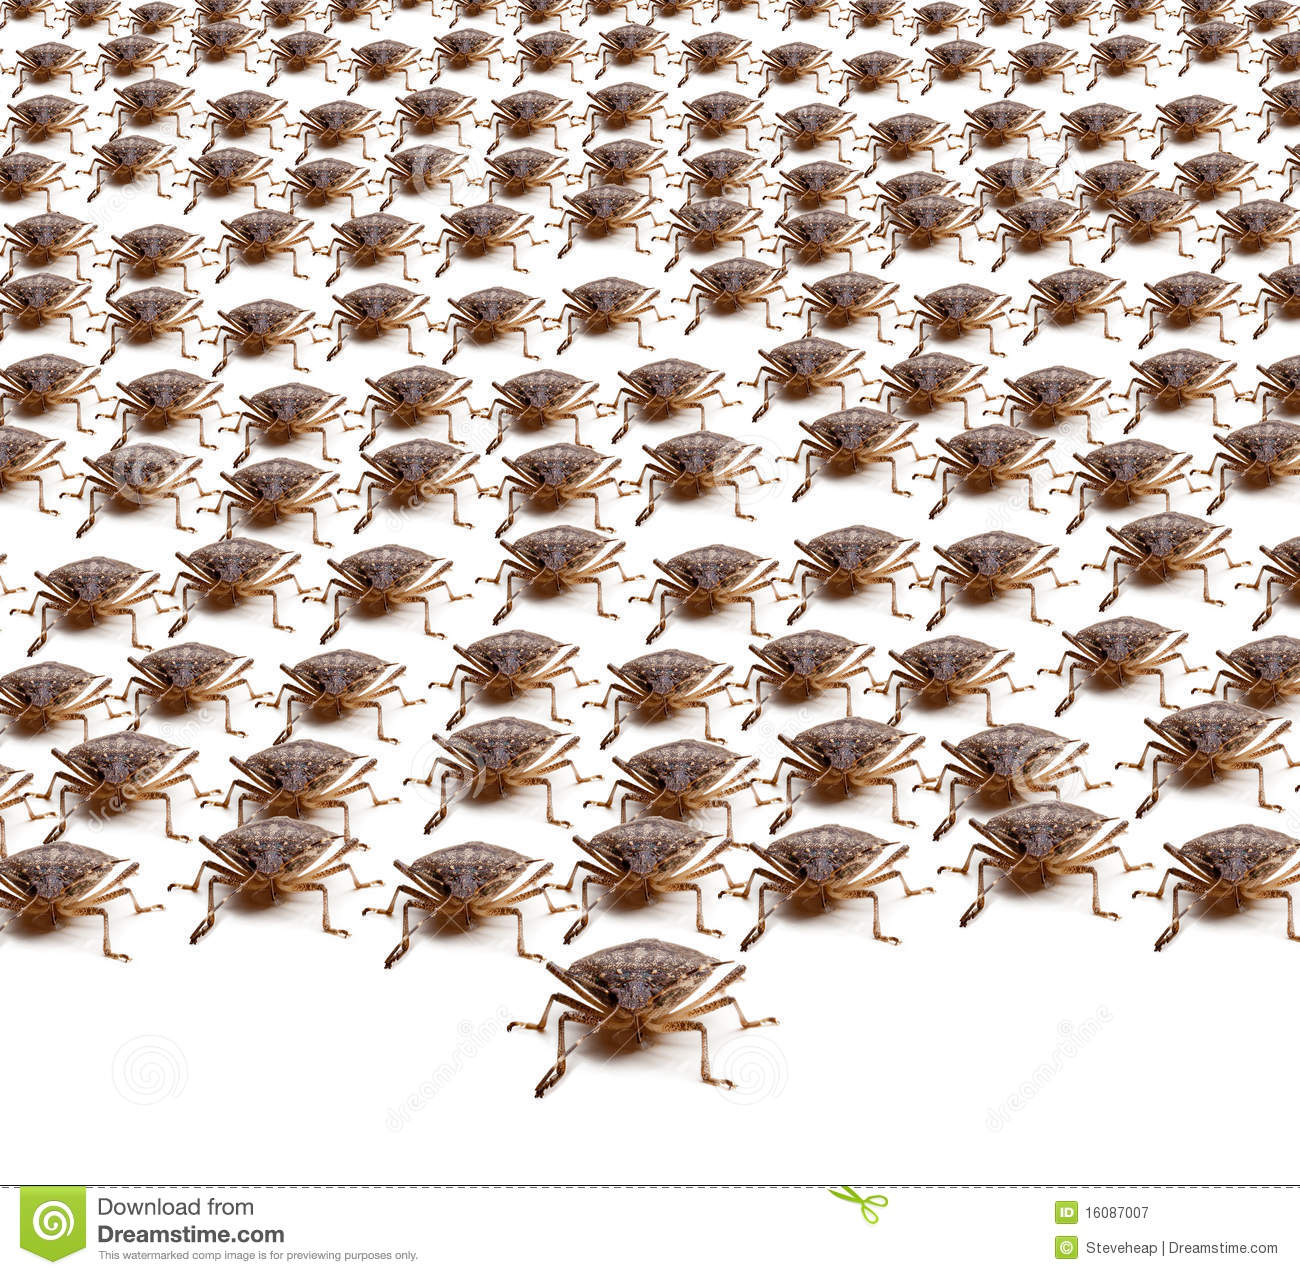 Large Crowd Of Brown Marmorated Stink Bug Or Shield Bug Isolated